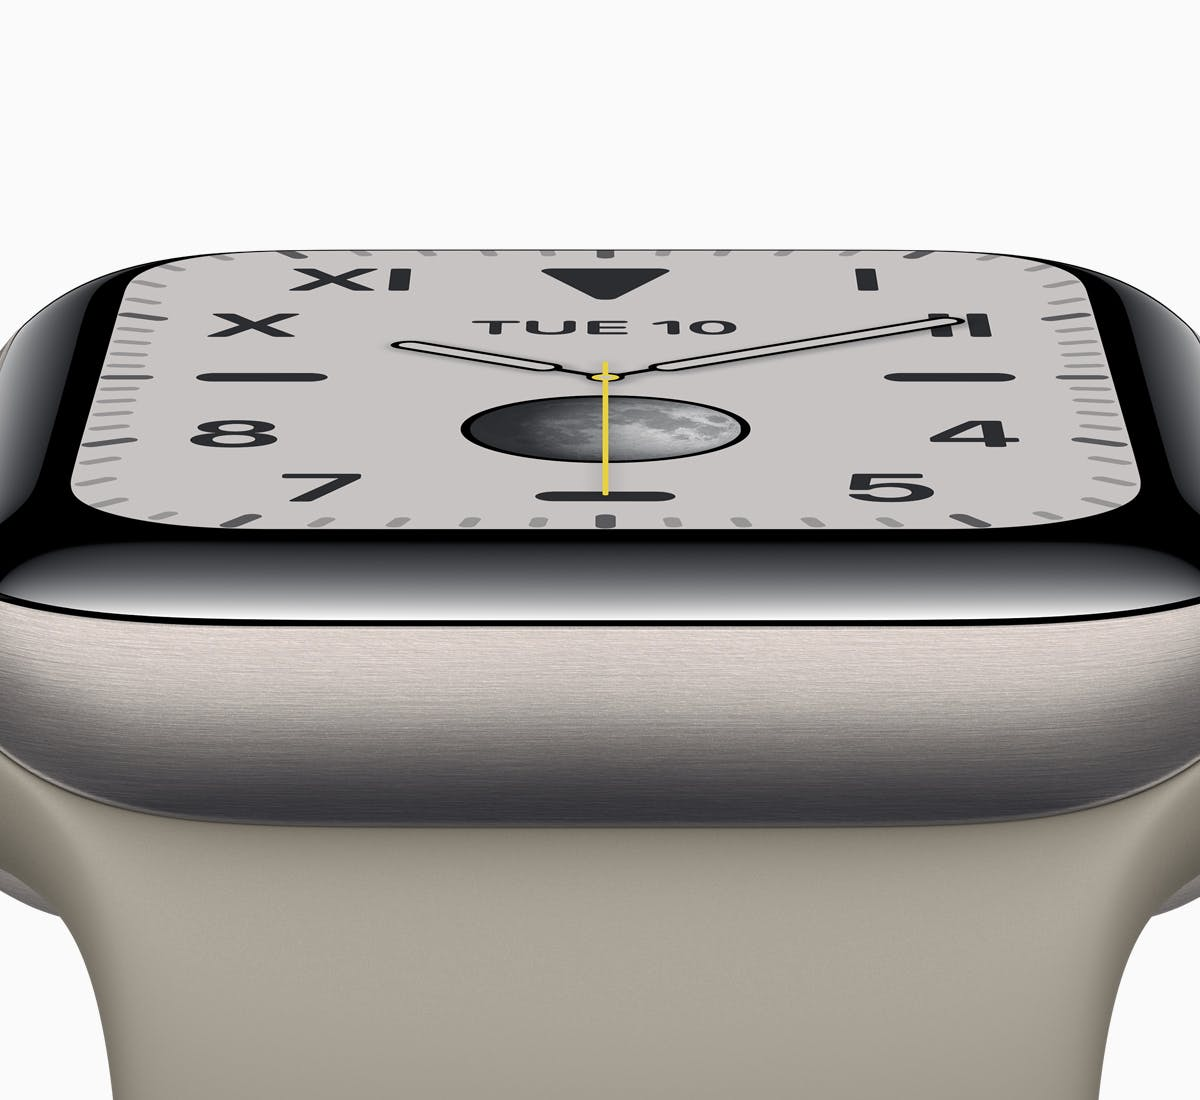 Apple Watch Series 5 reviews show why the always-on screen is a big deal